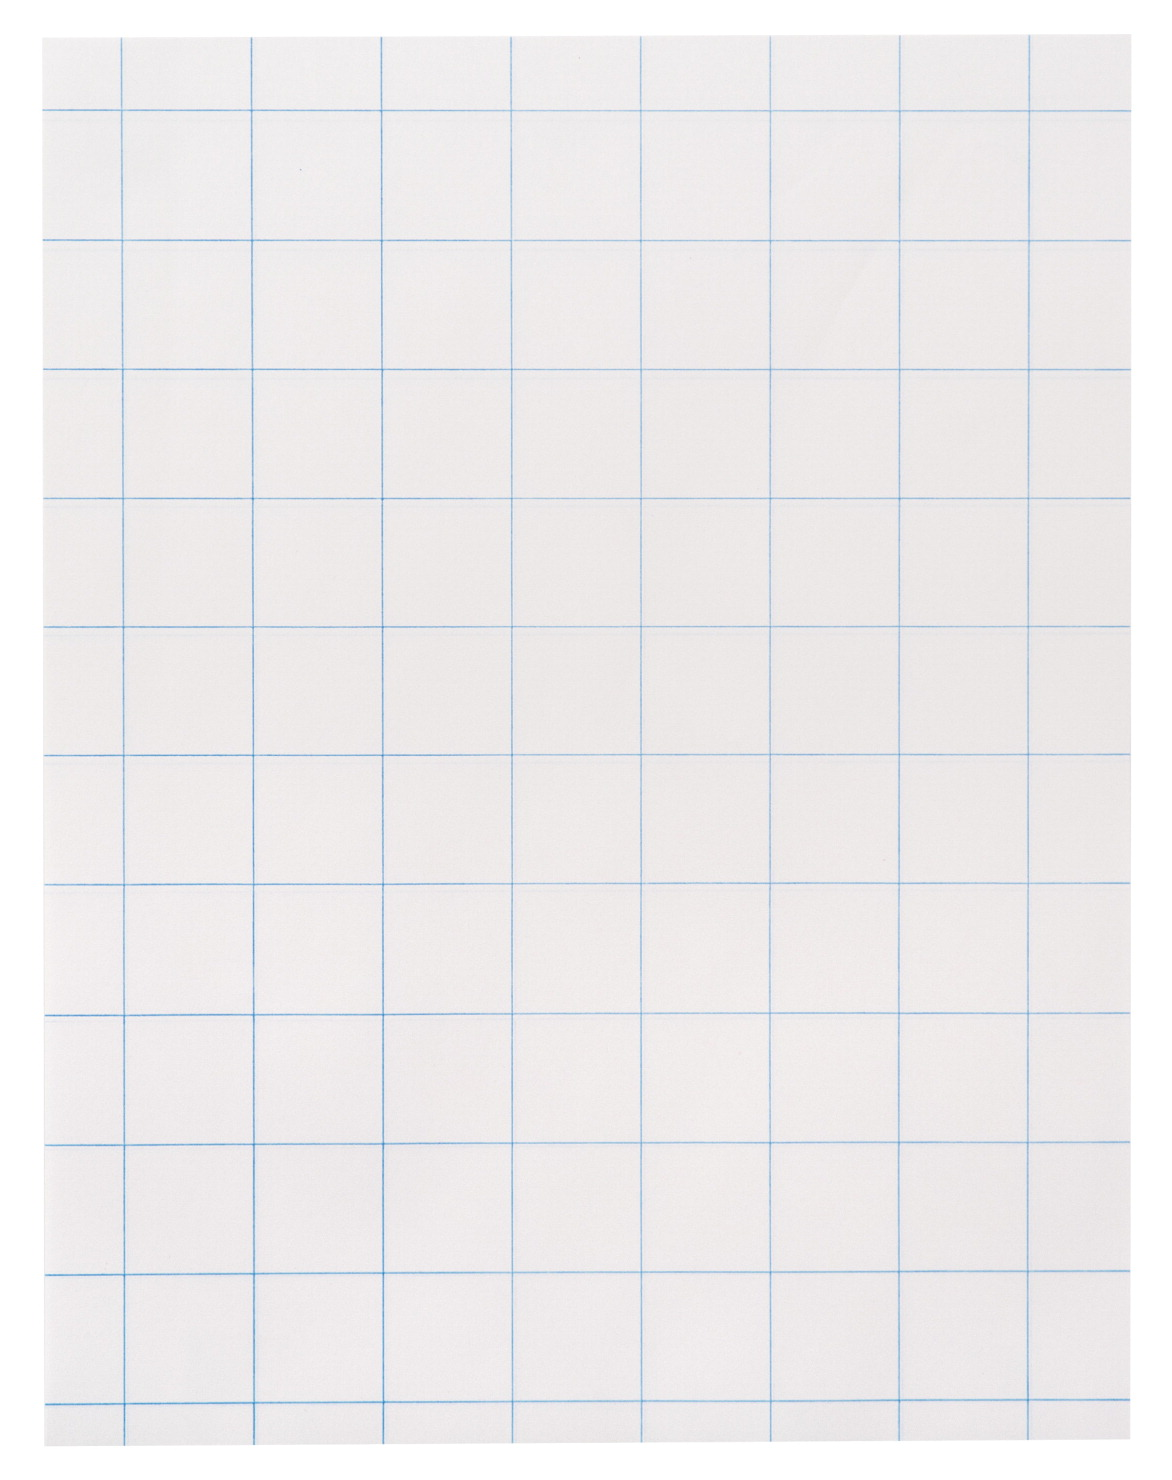 worksheet Images Of Graph Paper school smart graph paper white classroom direct double sided 8 12 x 11 in